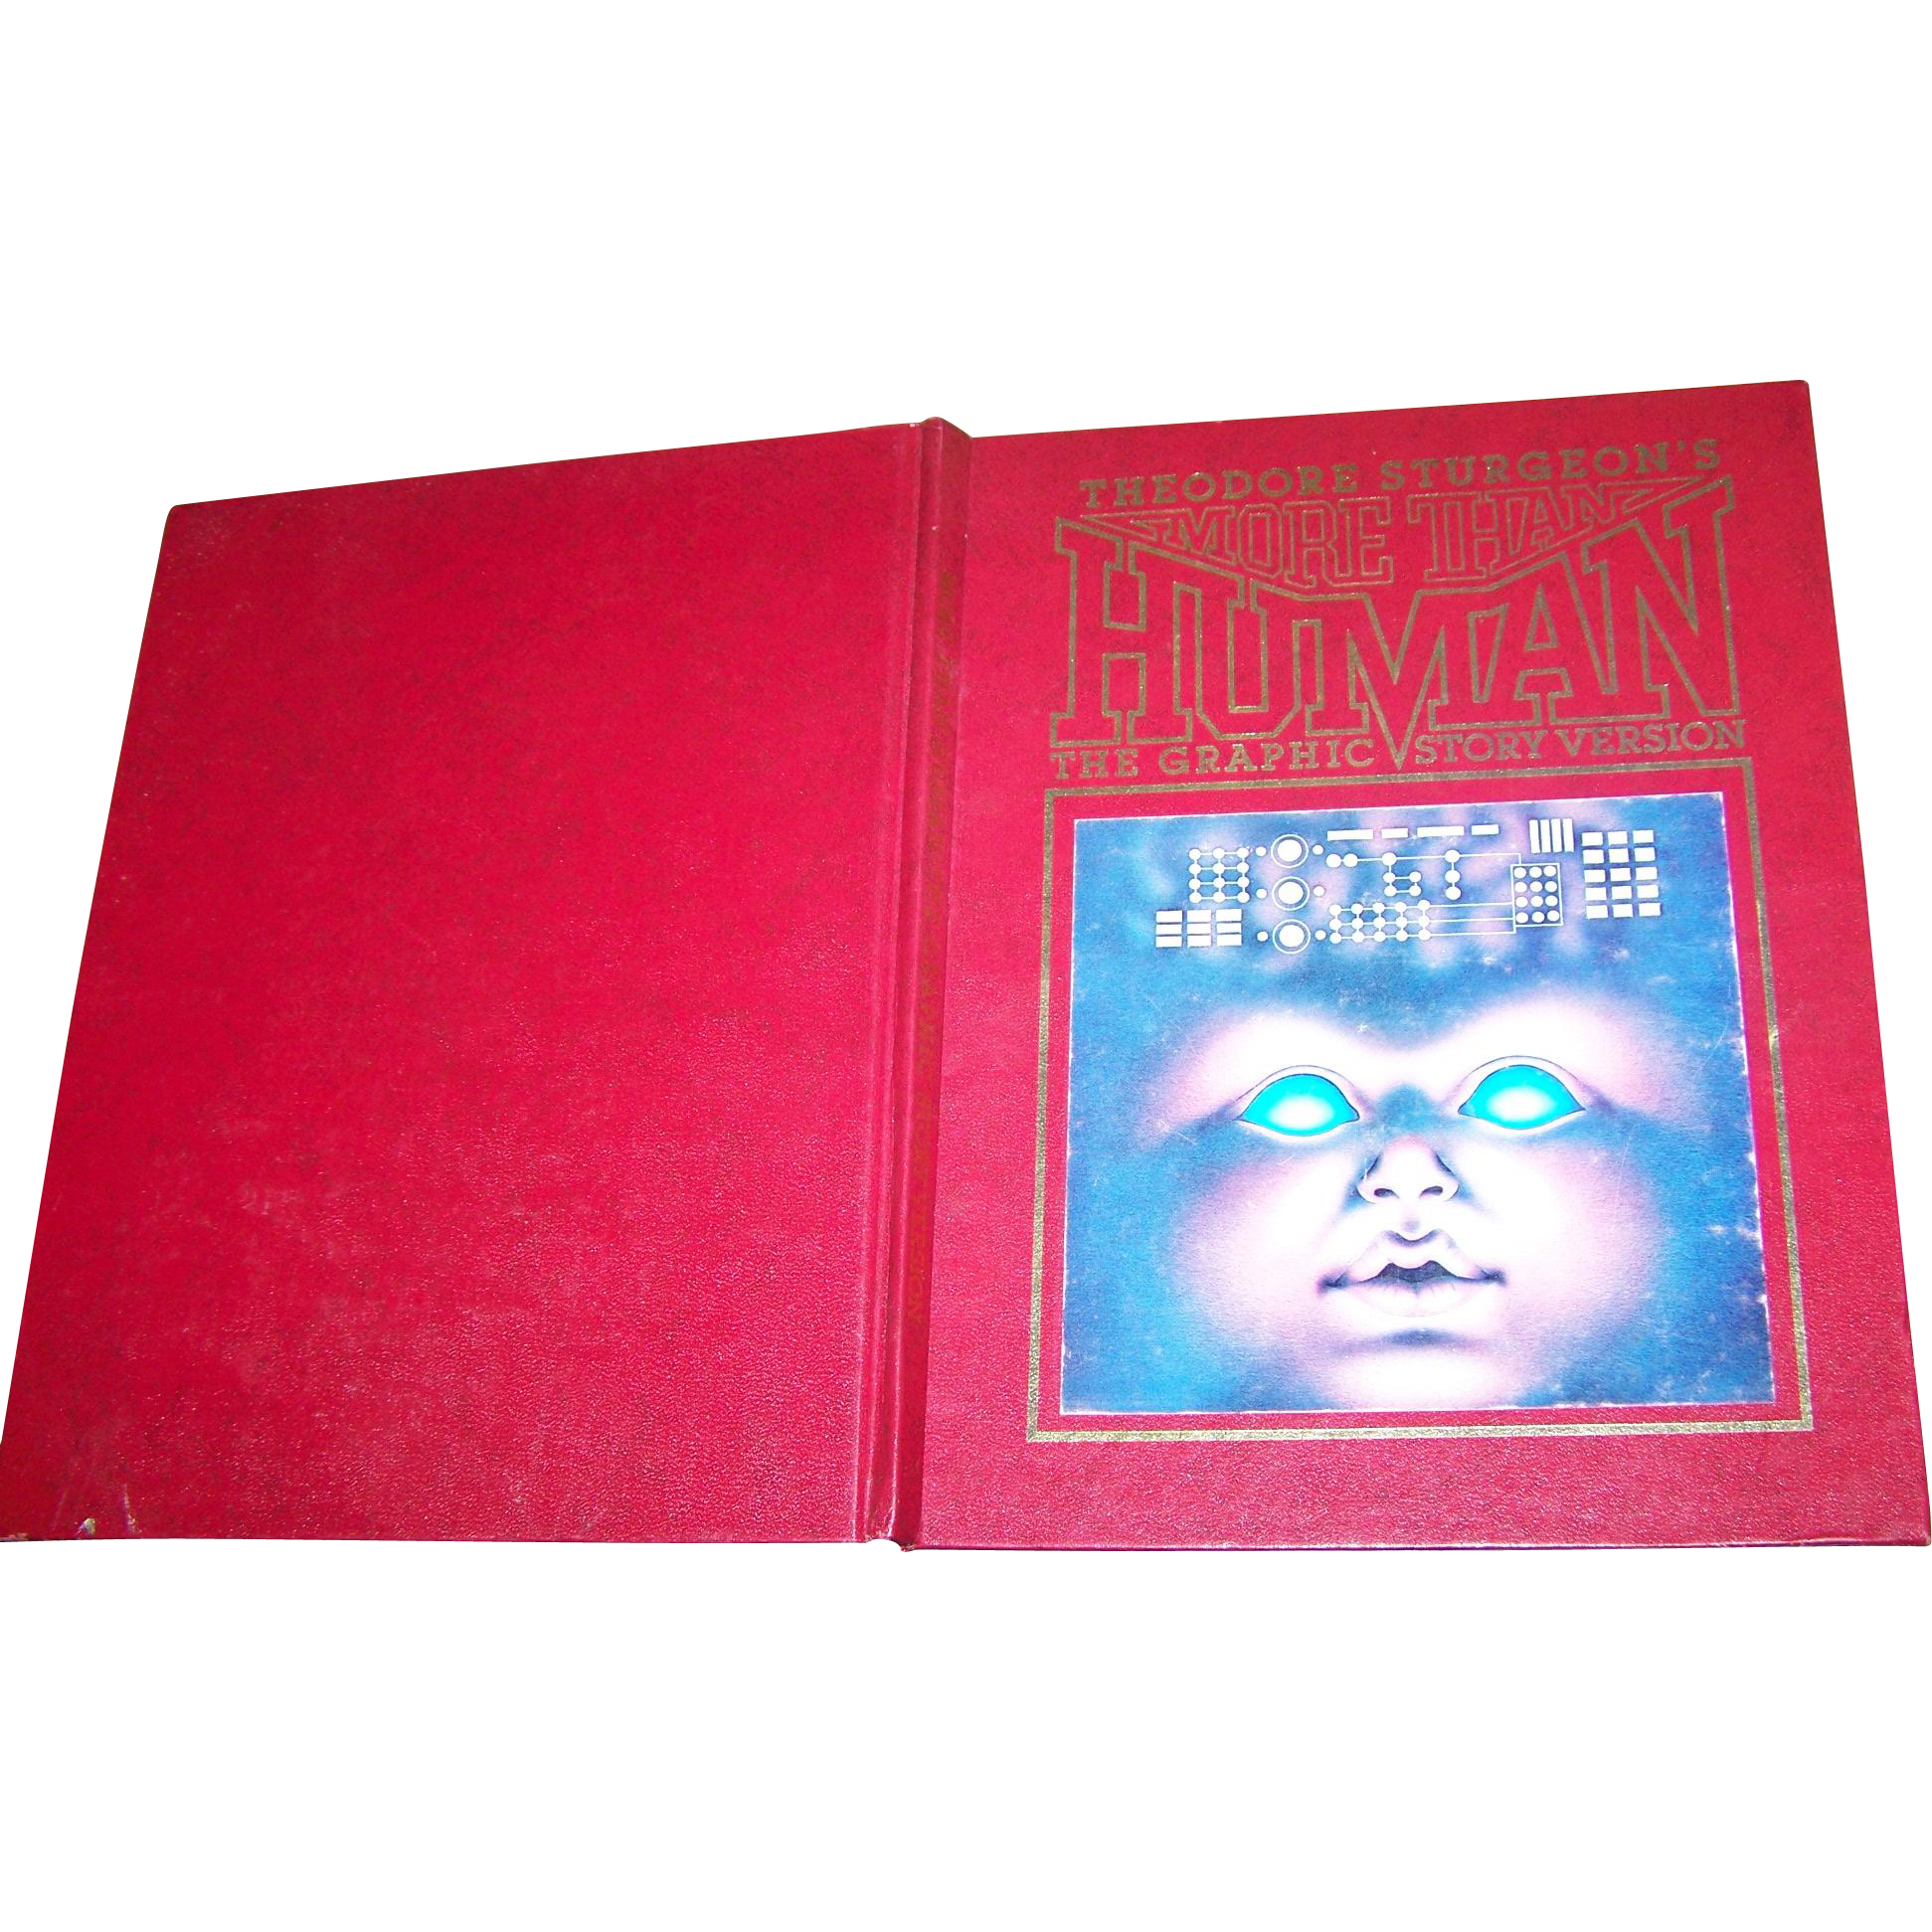 Hard Cover Book Theodore Sturgeon's More Than HUMAN The Graphic Story Version 1978 Signed